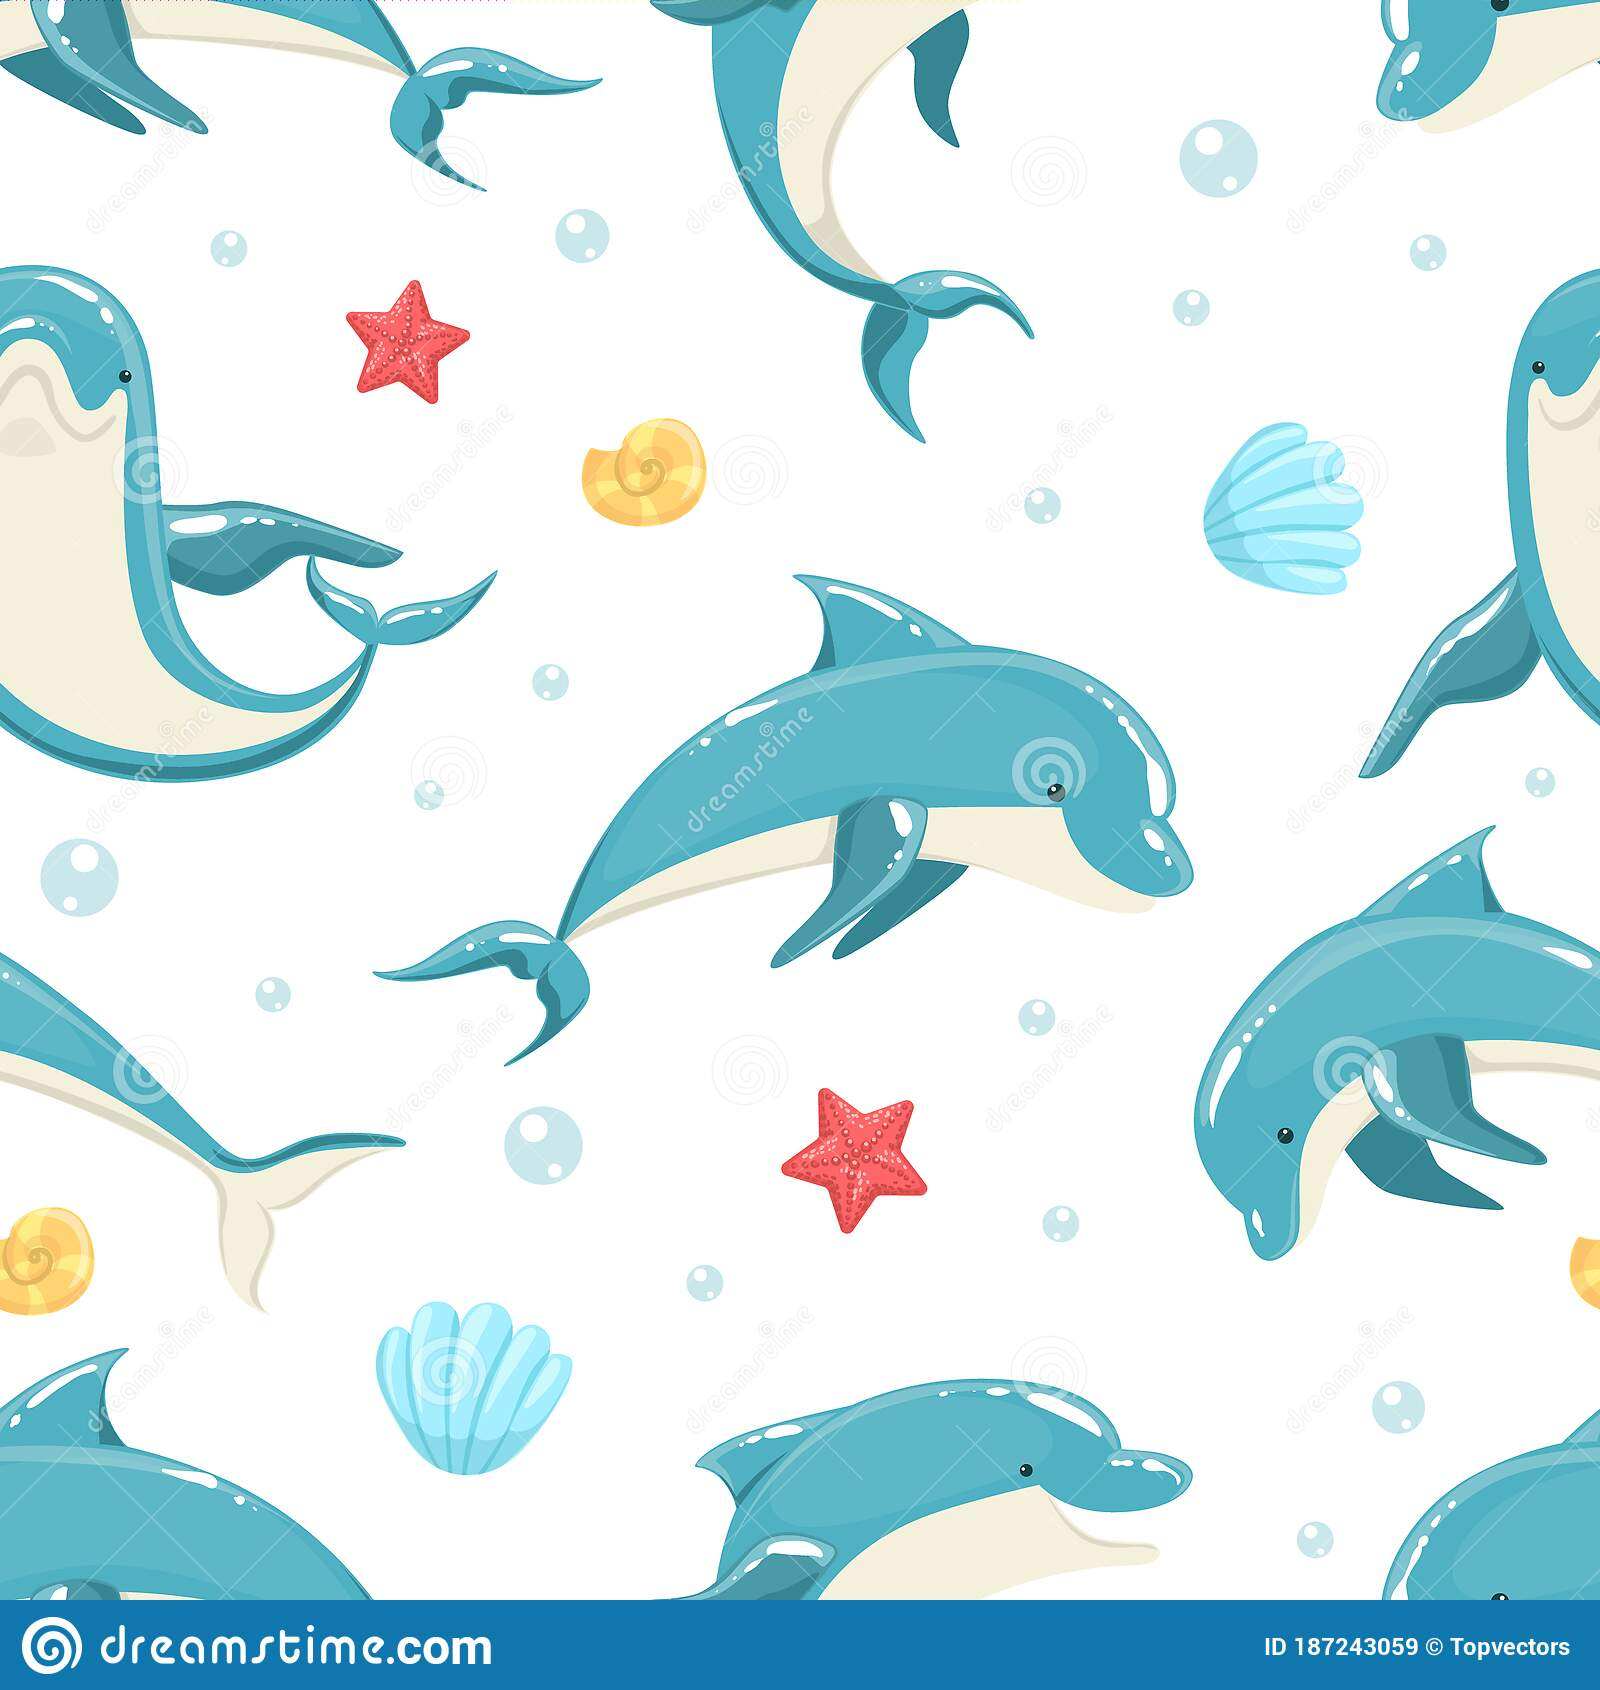 dolphin seamless pattern, marine sea creature textile, wallpaper,  packaging, background design vector illustration stock vector -  illustration of aquarium, life: 187243059  dreamstime.com